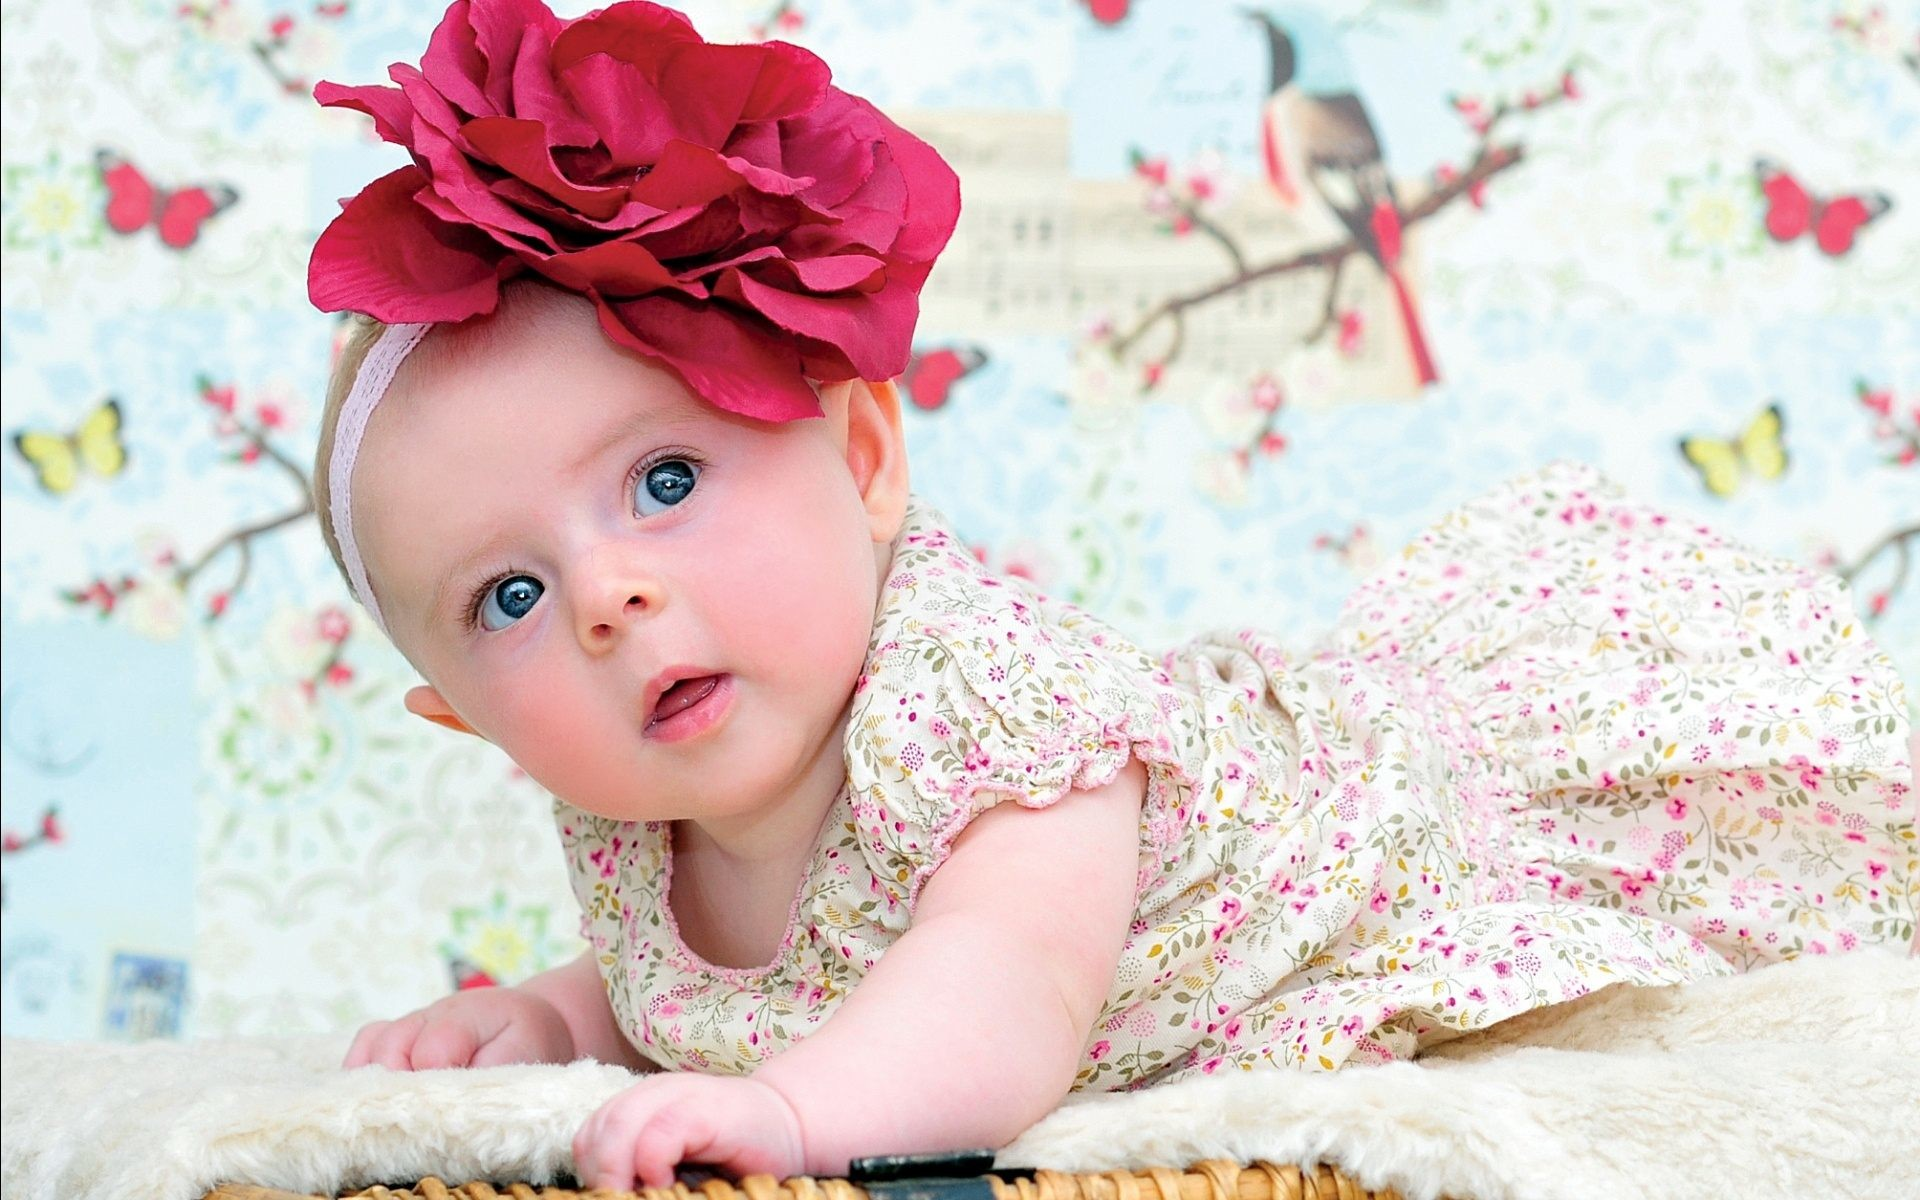 1920x1200 Cute Little Baby Girl Wallpaper HD Download Of Cute Baby